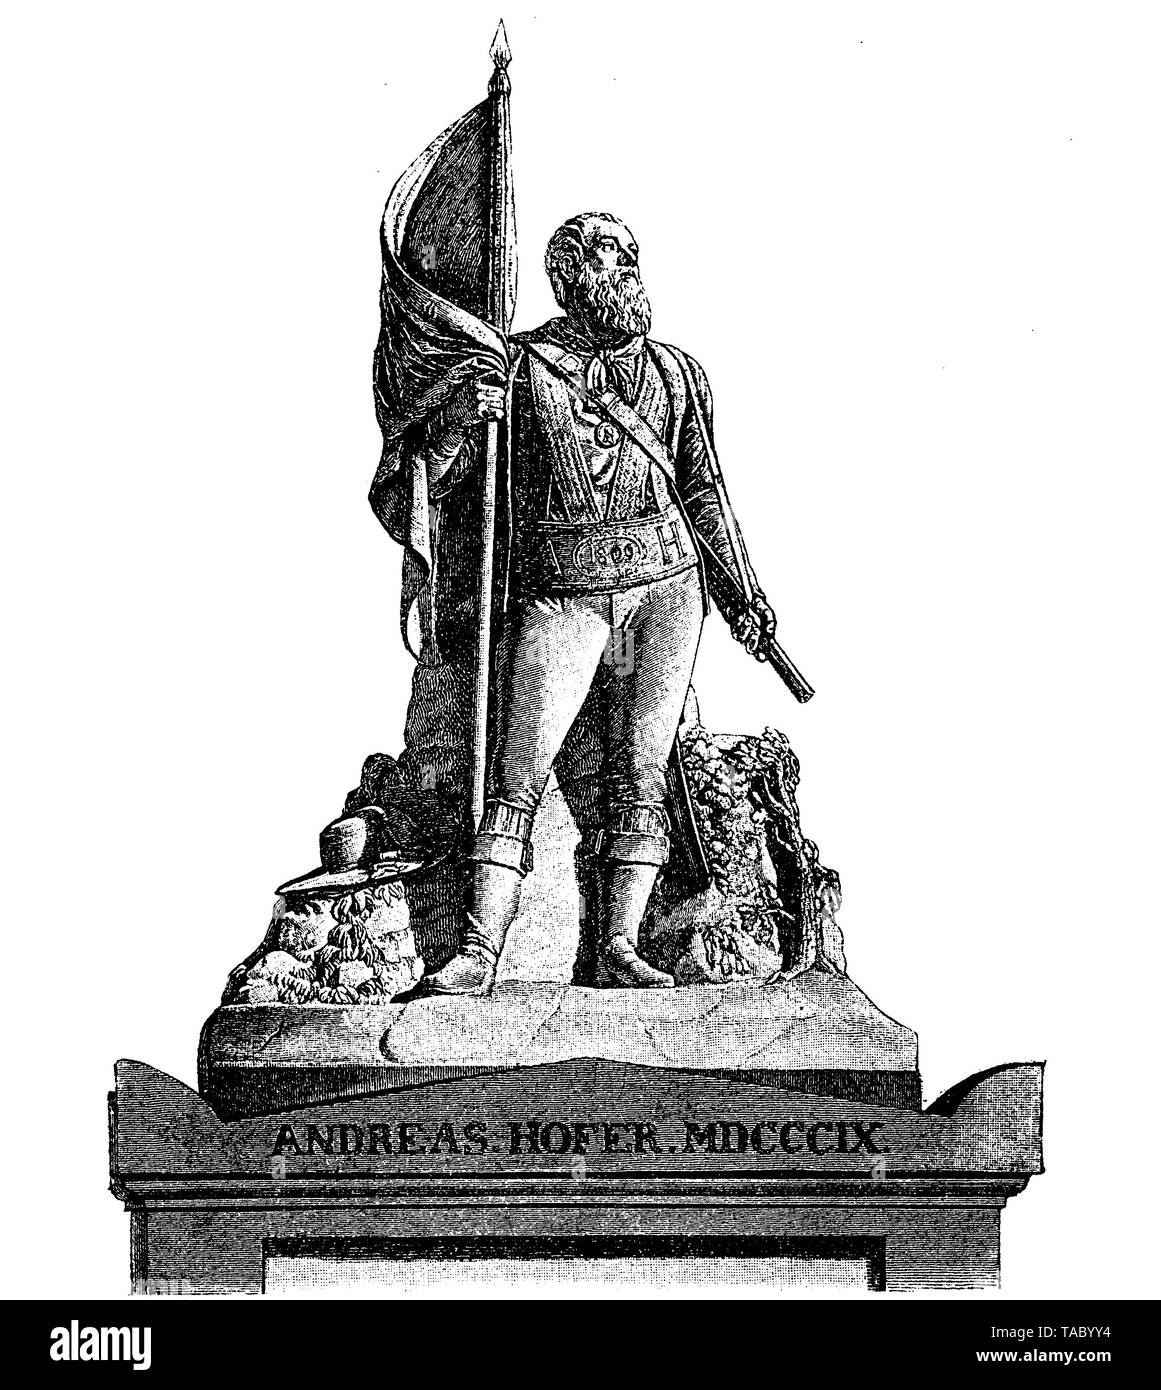 Innsbruck, Austria - Monument on the tomb of Andreas Hofer (1767 - 1810) folk hero, leader of the Tyrolean Rebellion against the Napoleonic invasion - Stock Image